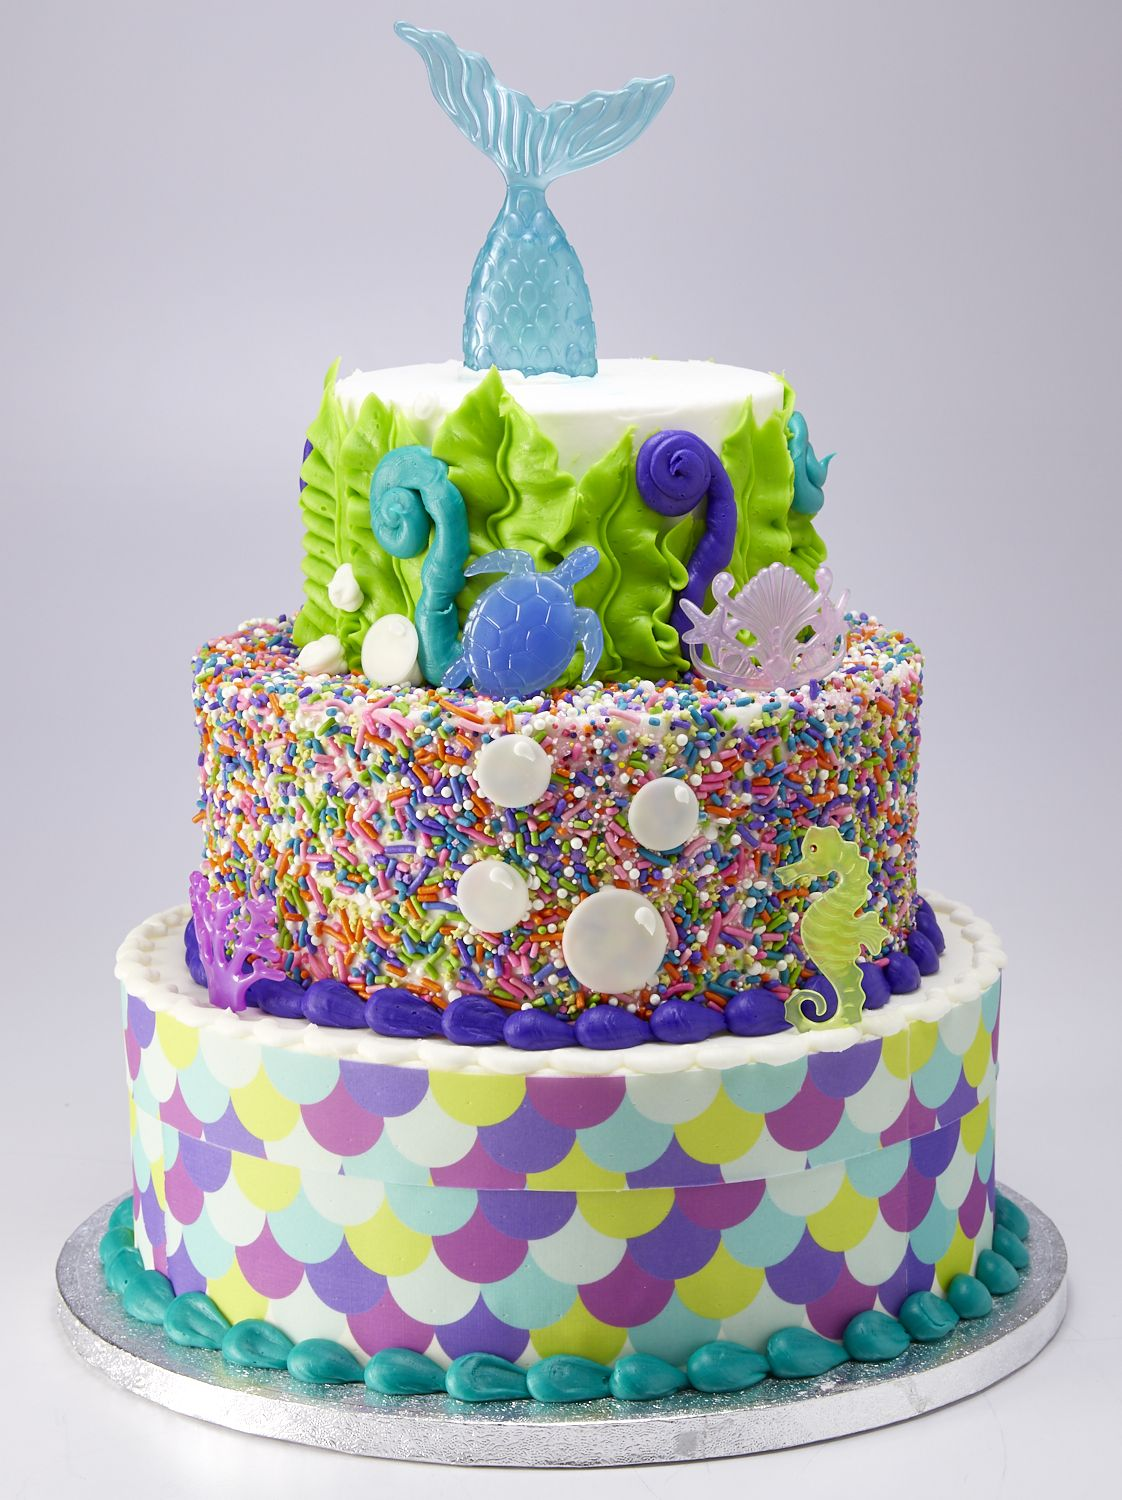 You Can Get A 3 Tier Mermaid Cake At Sam s Club For Less Than  70 Sam s Club